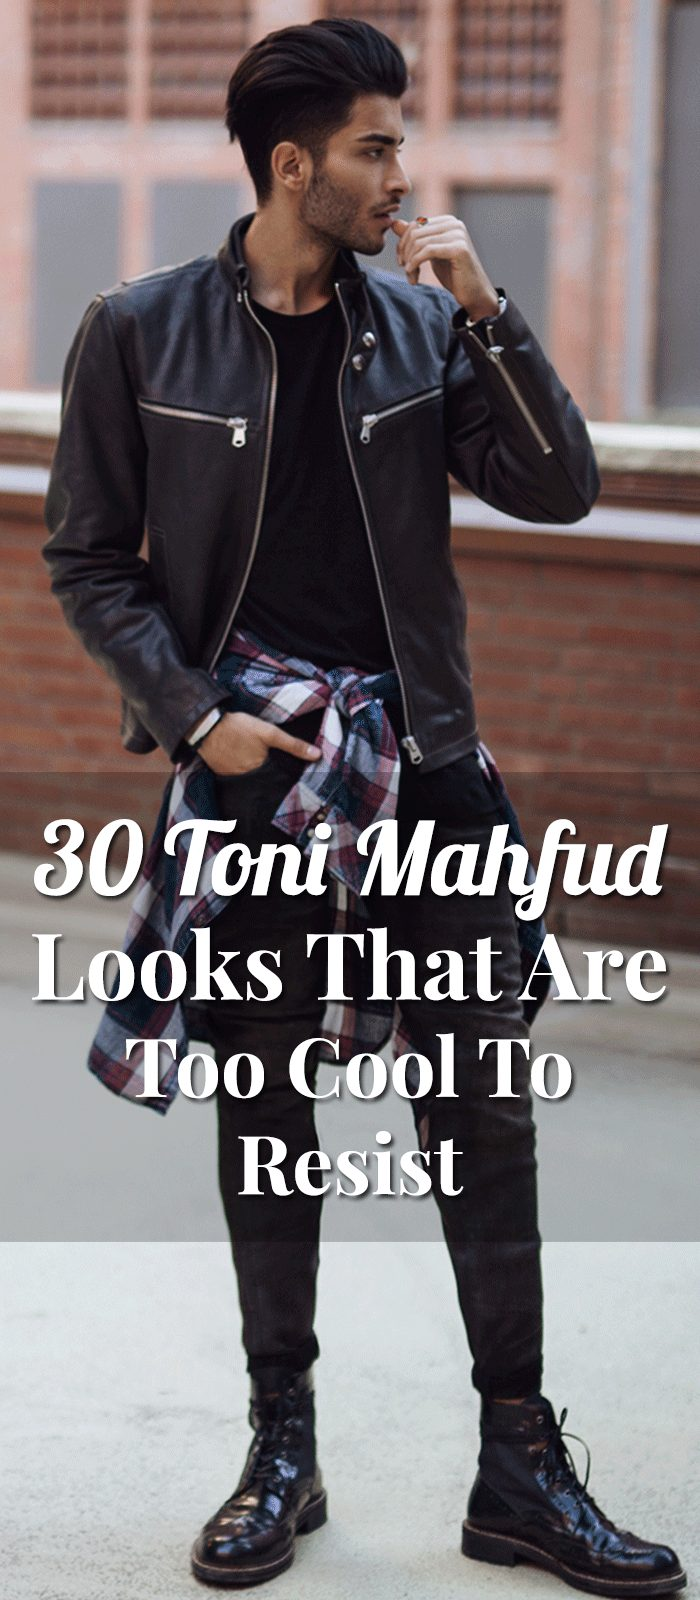 30 Toni Mahfud Looks That Are Too Cool To Resist